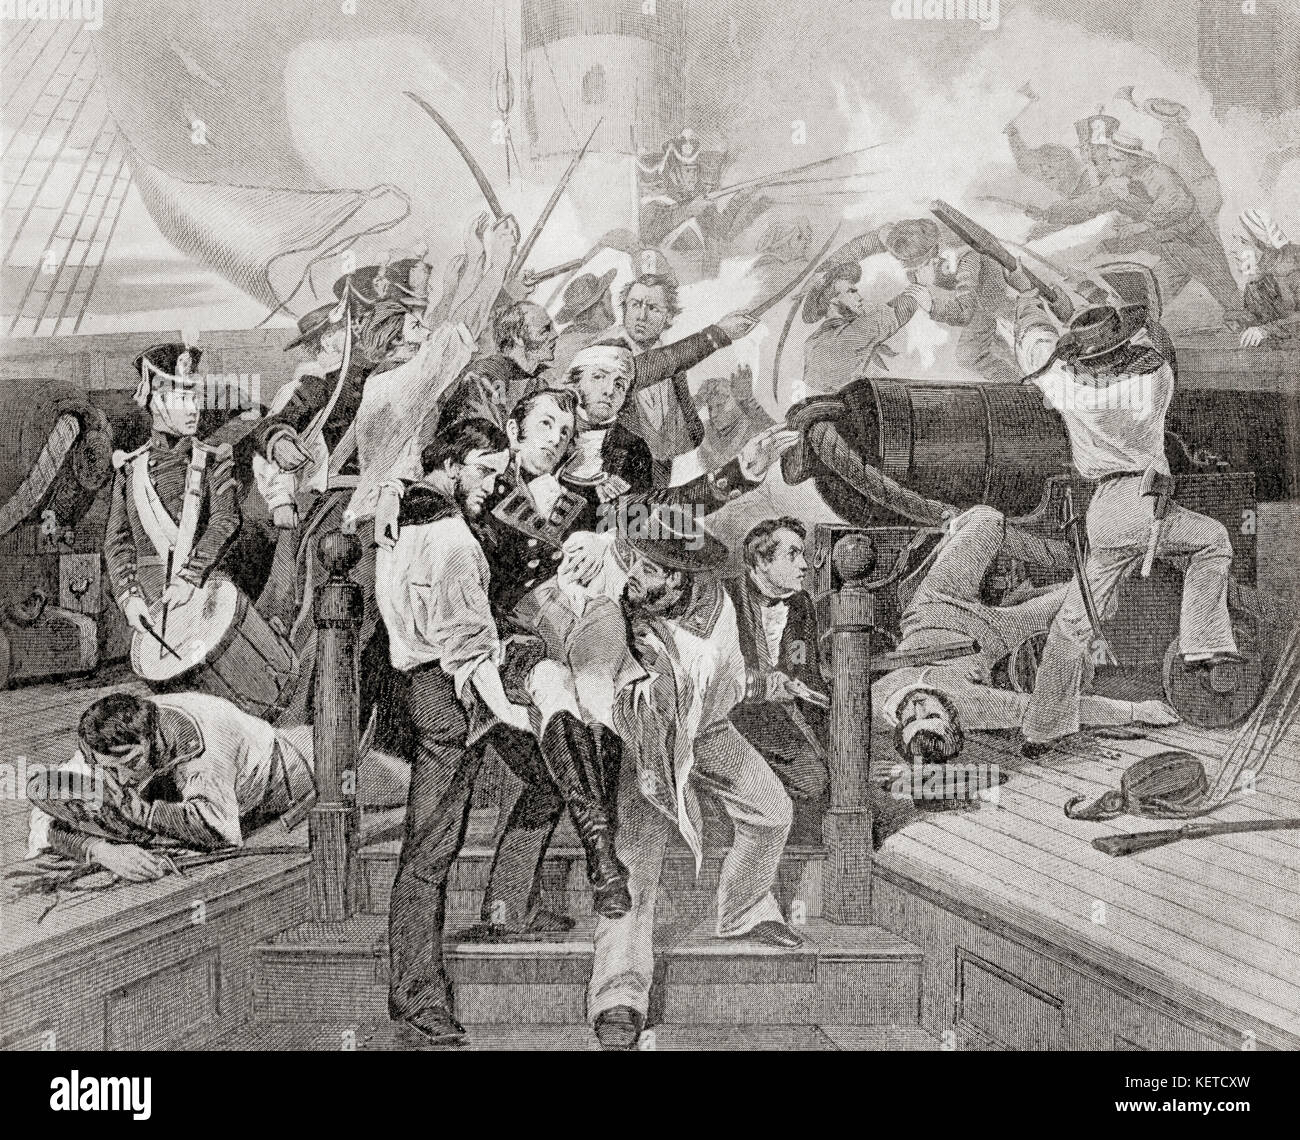 The death of James Lawrence aboard the USS Chesapeake after a single-ship action against HMS Shannon during The War of 1812.  James Lawrence, 1781 – 1813. American naval officer.  From Hutchinson's History of the Nations, published 1915. Stock Photo